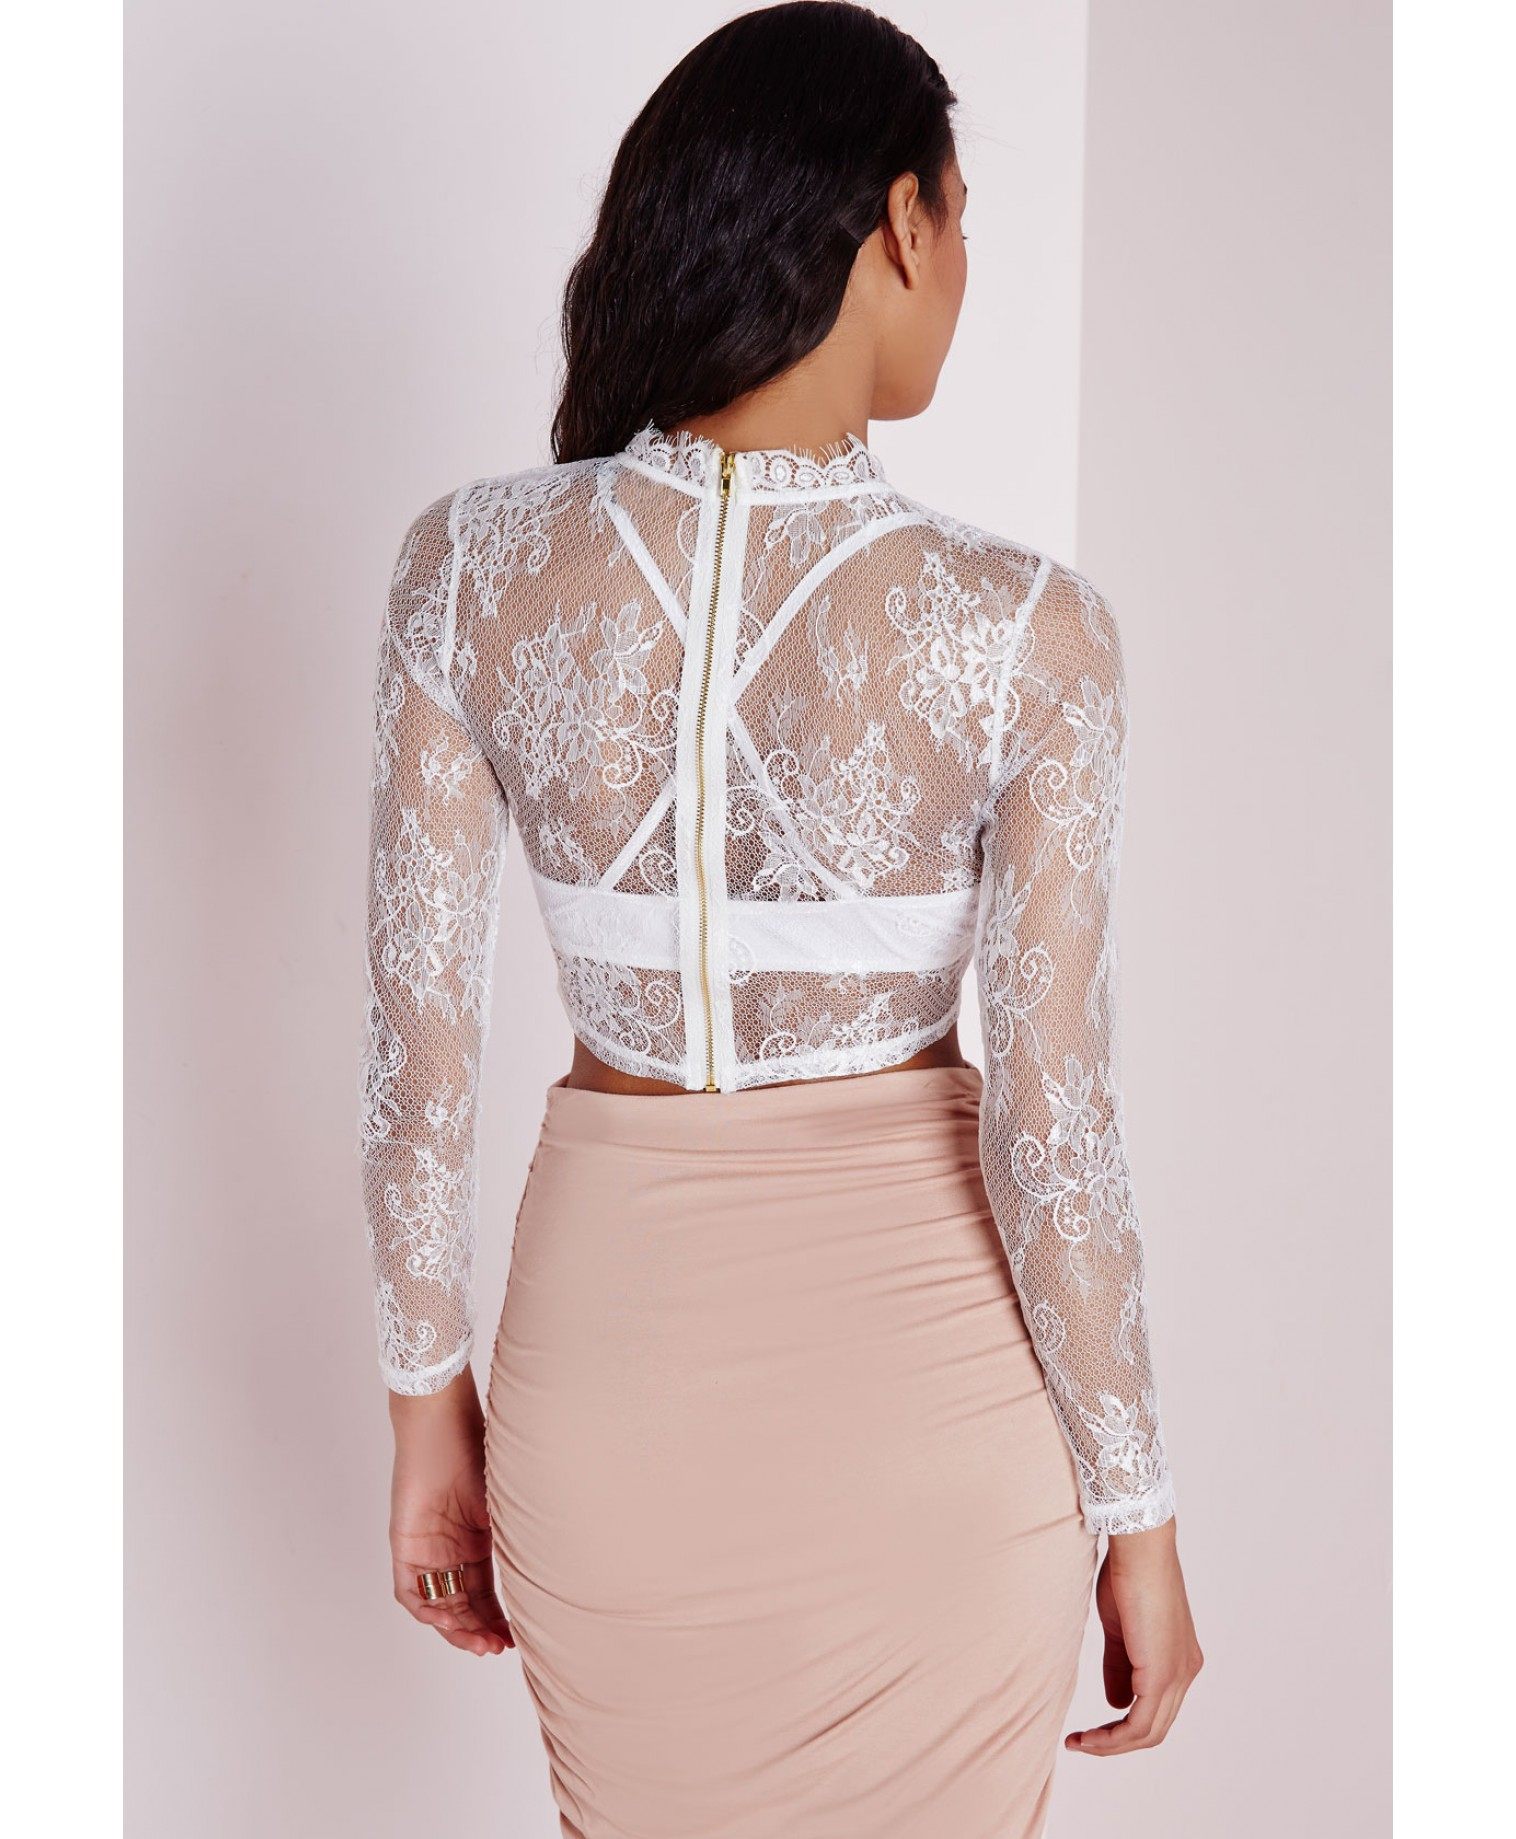 a423a2bbeab3e Lyst - Missguided Long Sleeve Floral Lace Crop Top White